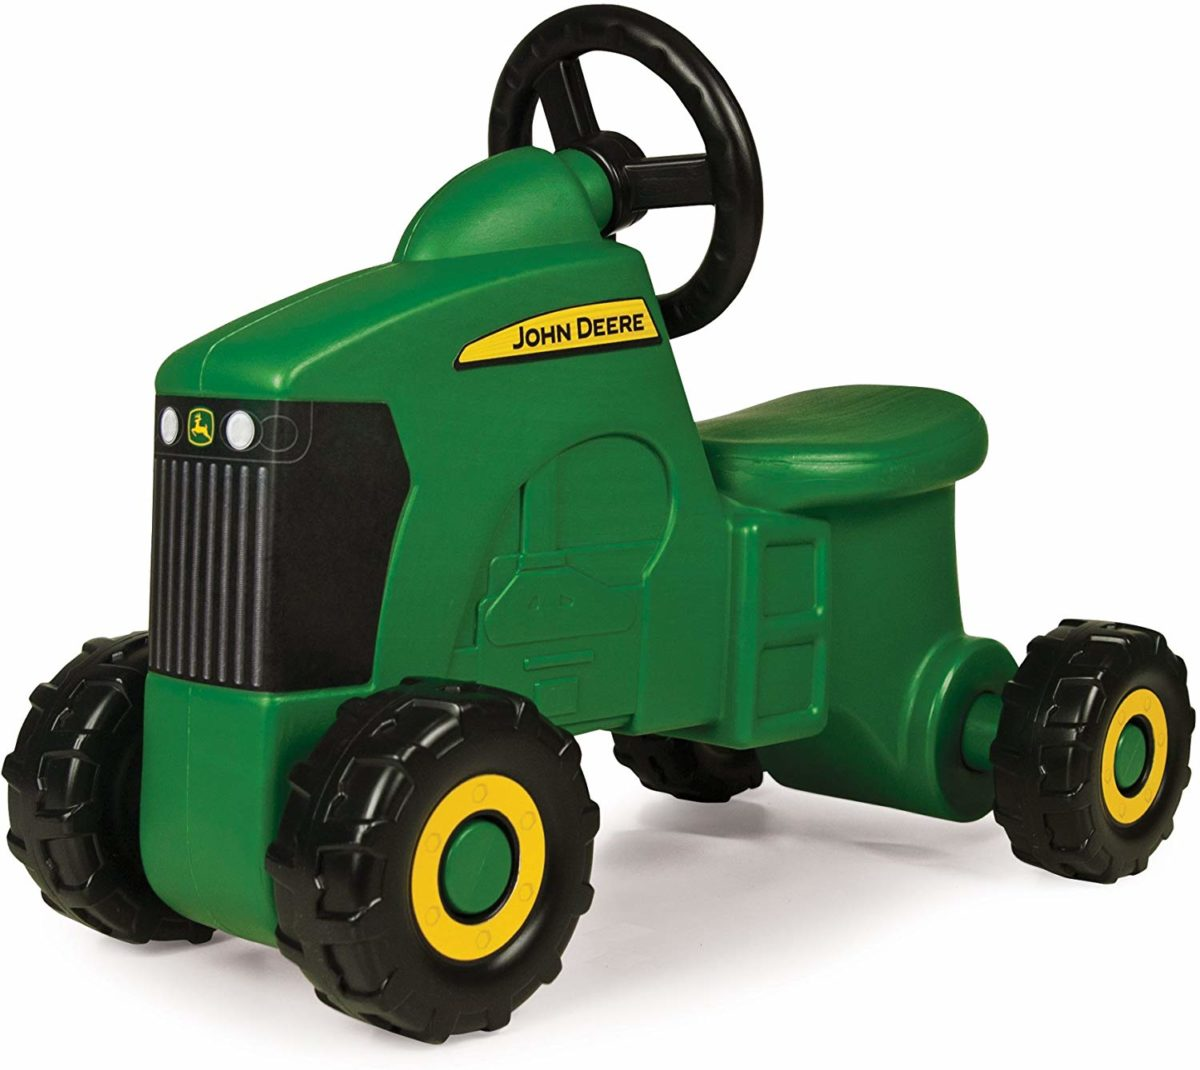 TOMY John Deere Sit-N-Scoot Tractor Toy - Top Toys and Gifts for Four Year Old Boys 1